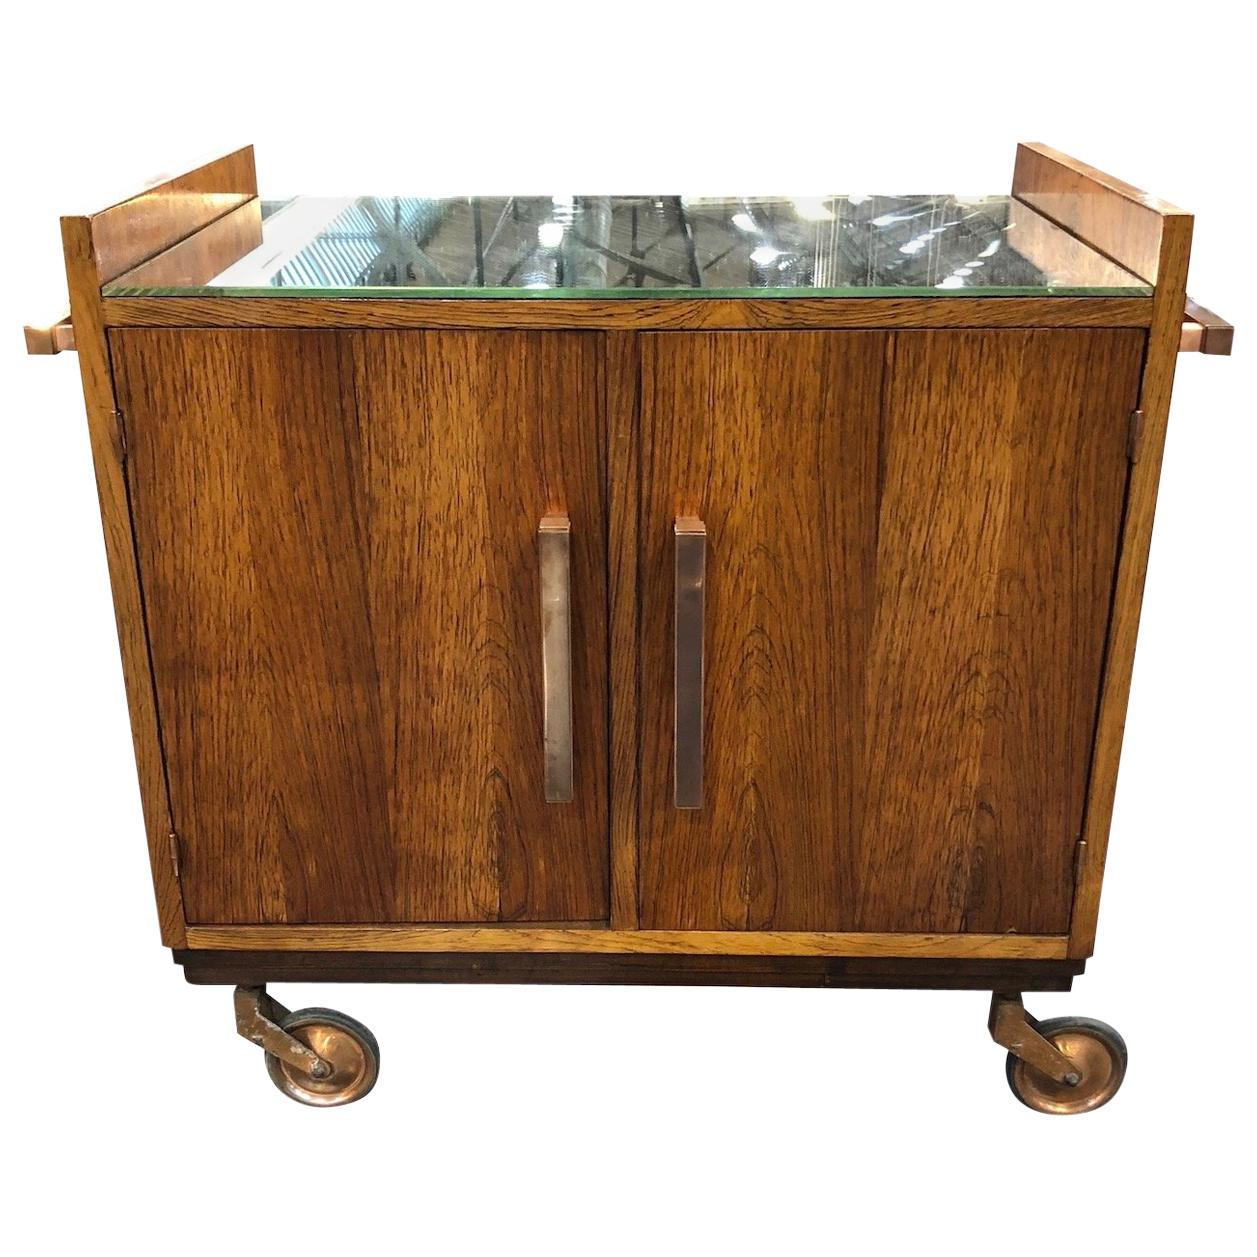 Art Deco Bar Trolley in Style of Jacques Adnet with Original Mirror France 1930s